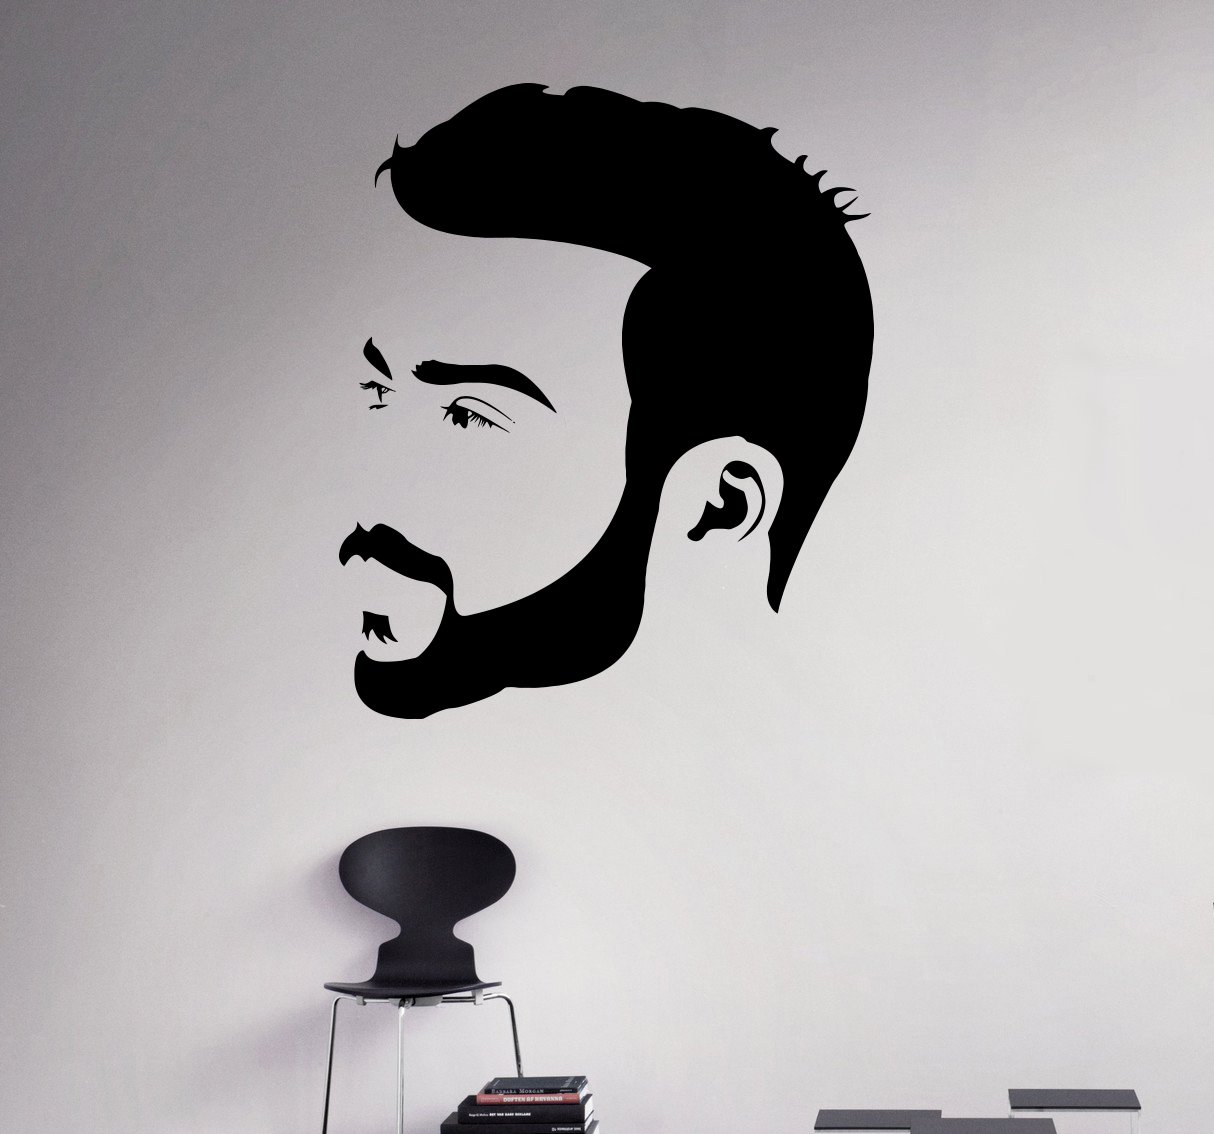 amazon com man hair salon wall decal beauty salon wall vinyl amazon com man hair salon wall decal beauty salon wall vinyl sticker hair care wall graphics hair style shop window sticker 19 hs home kitchen